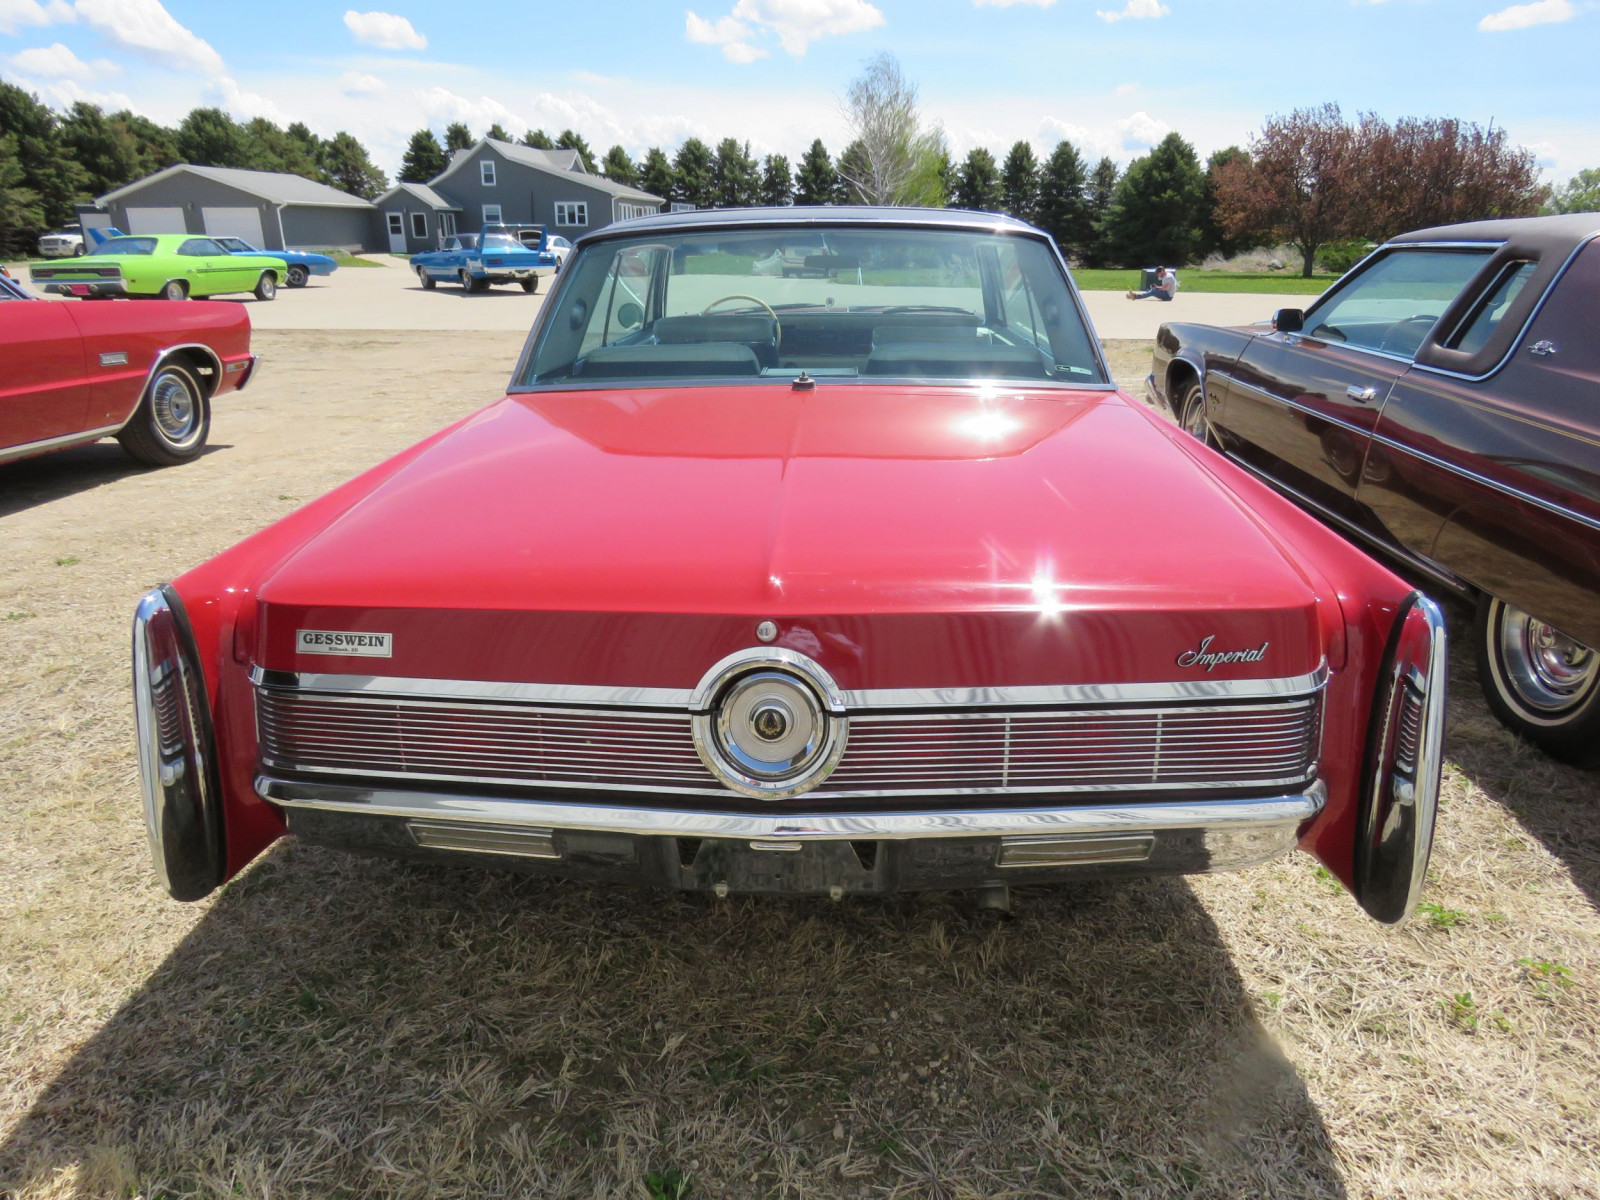 1967 Chrysler Imperial Crown Coupe - Image 8